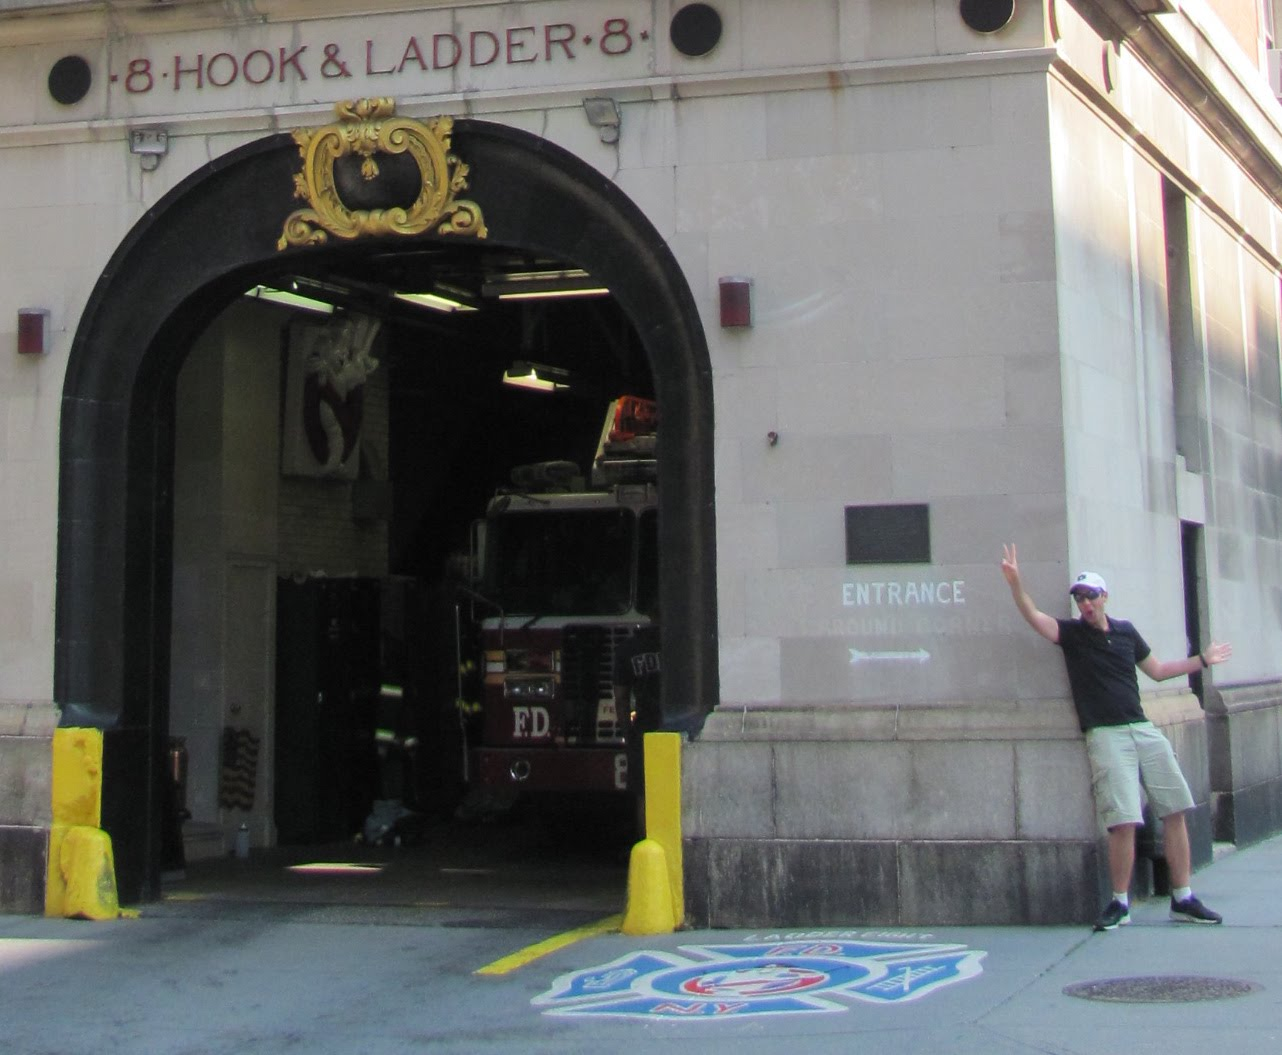 Ghostbusters Tour: The Firehouse